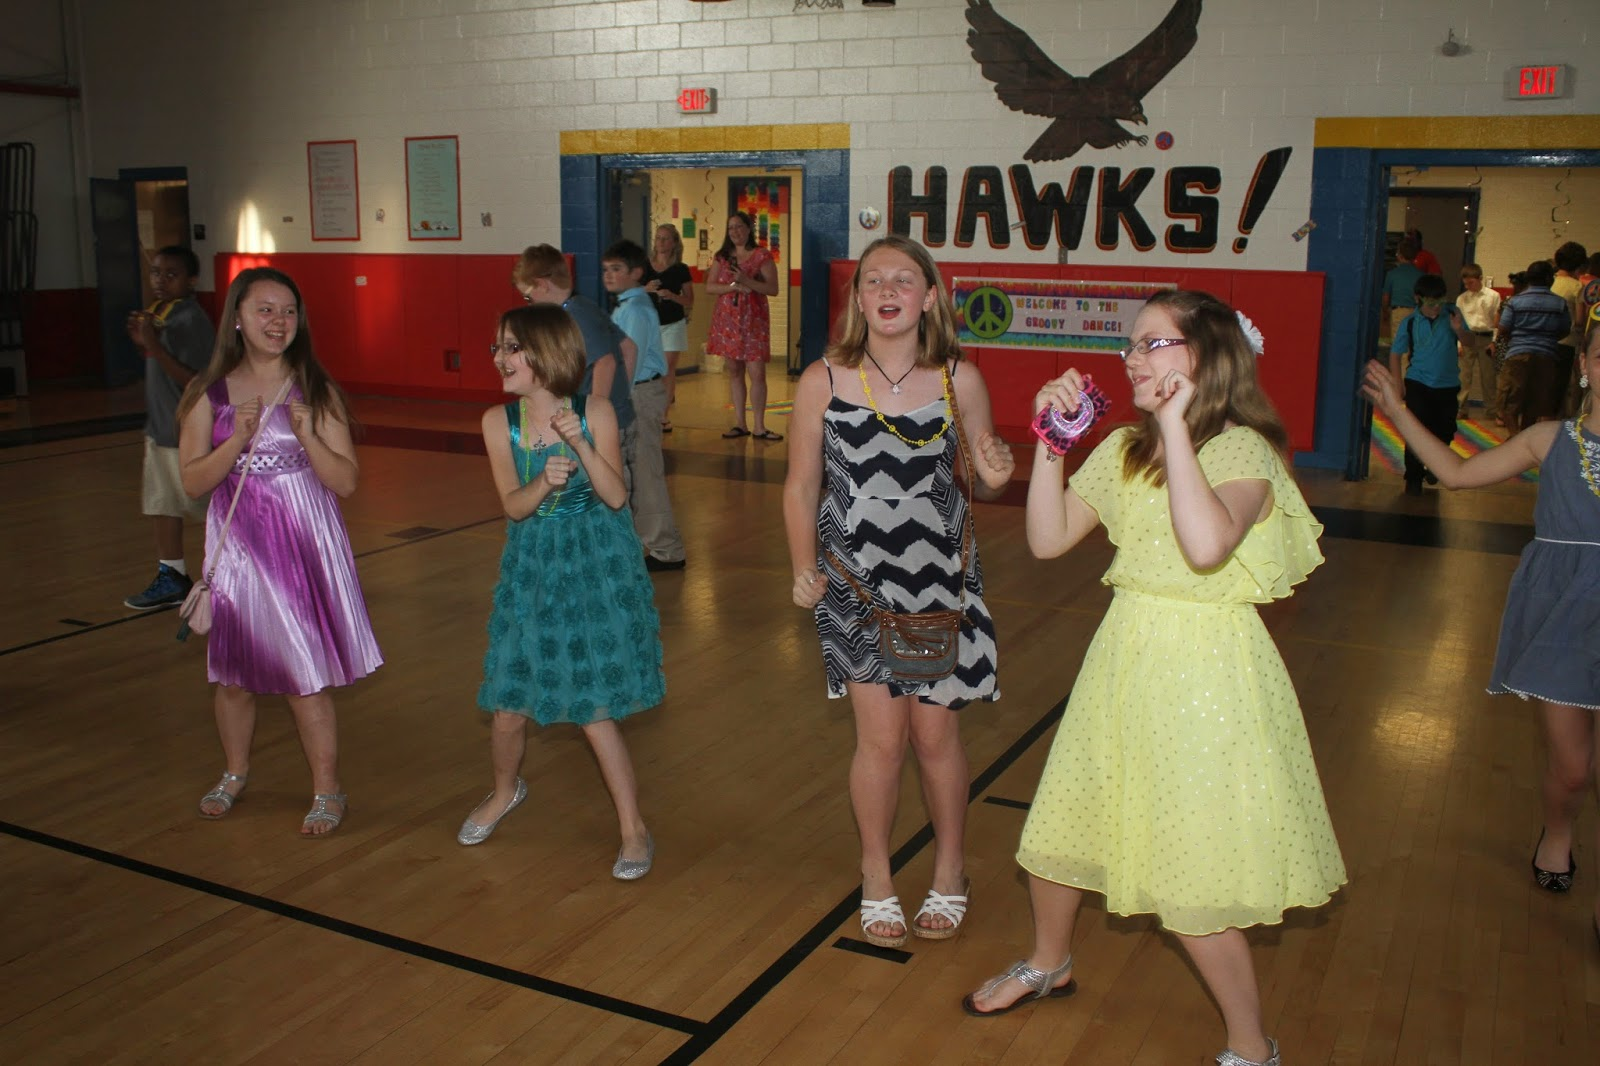 dance in public school curricular Why arts education is crucial to the arts whether or not public schools have crammed the classroom curriculum, and a public sense that the arts.